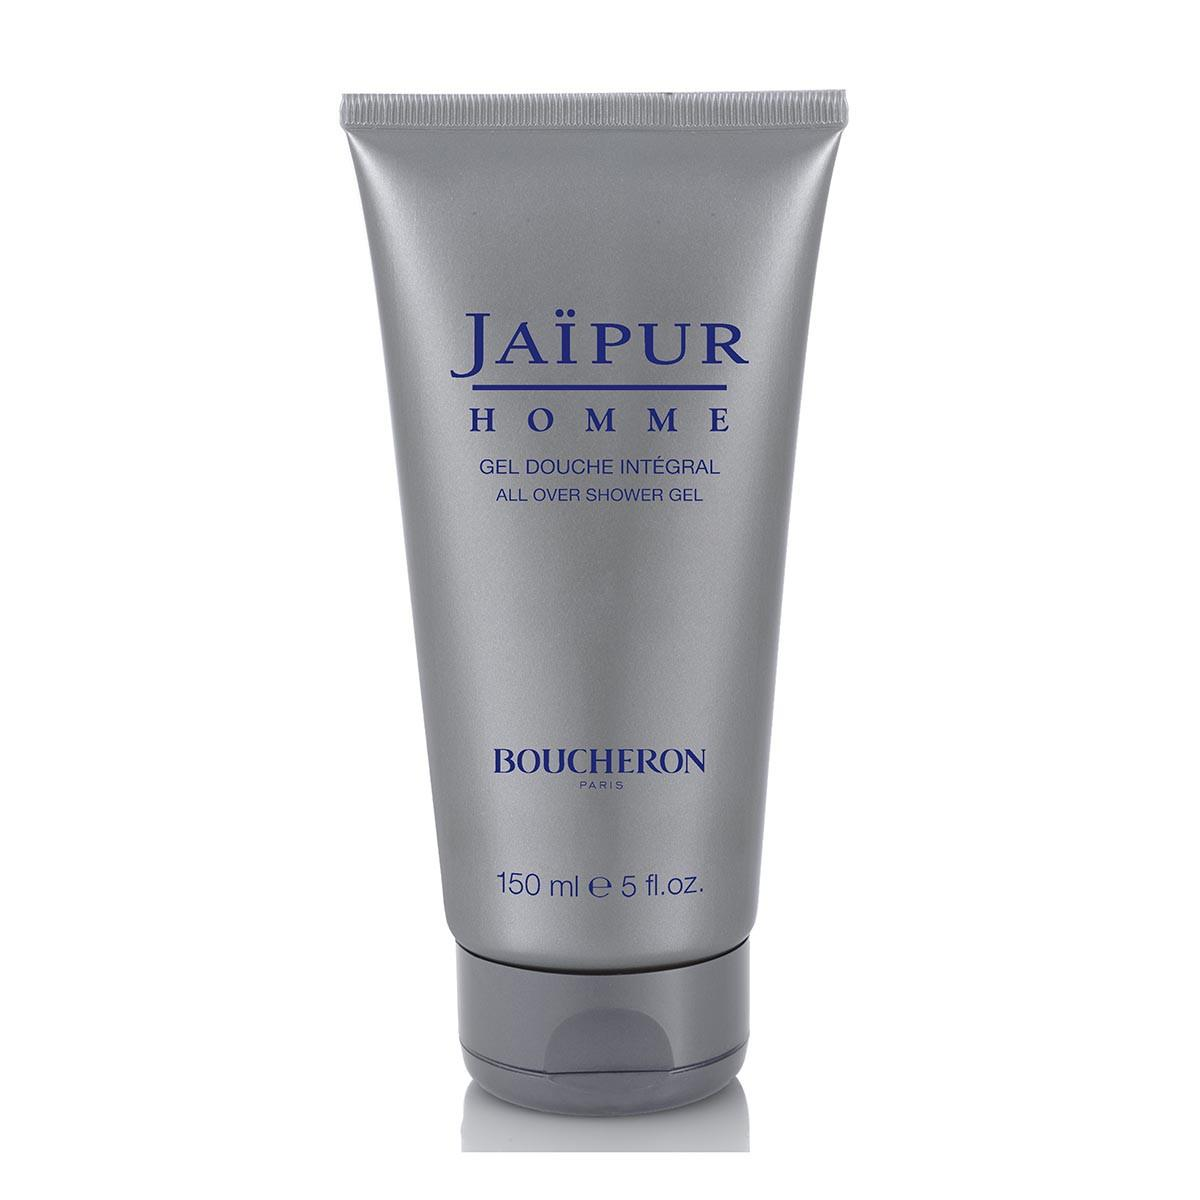 Boucheron Jaipur Homme All Over Shower Gel 150 ml